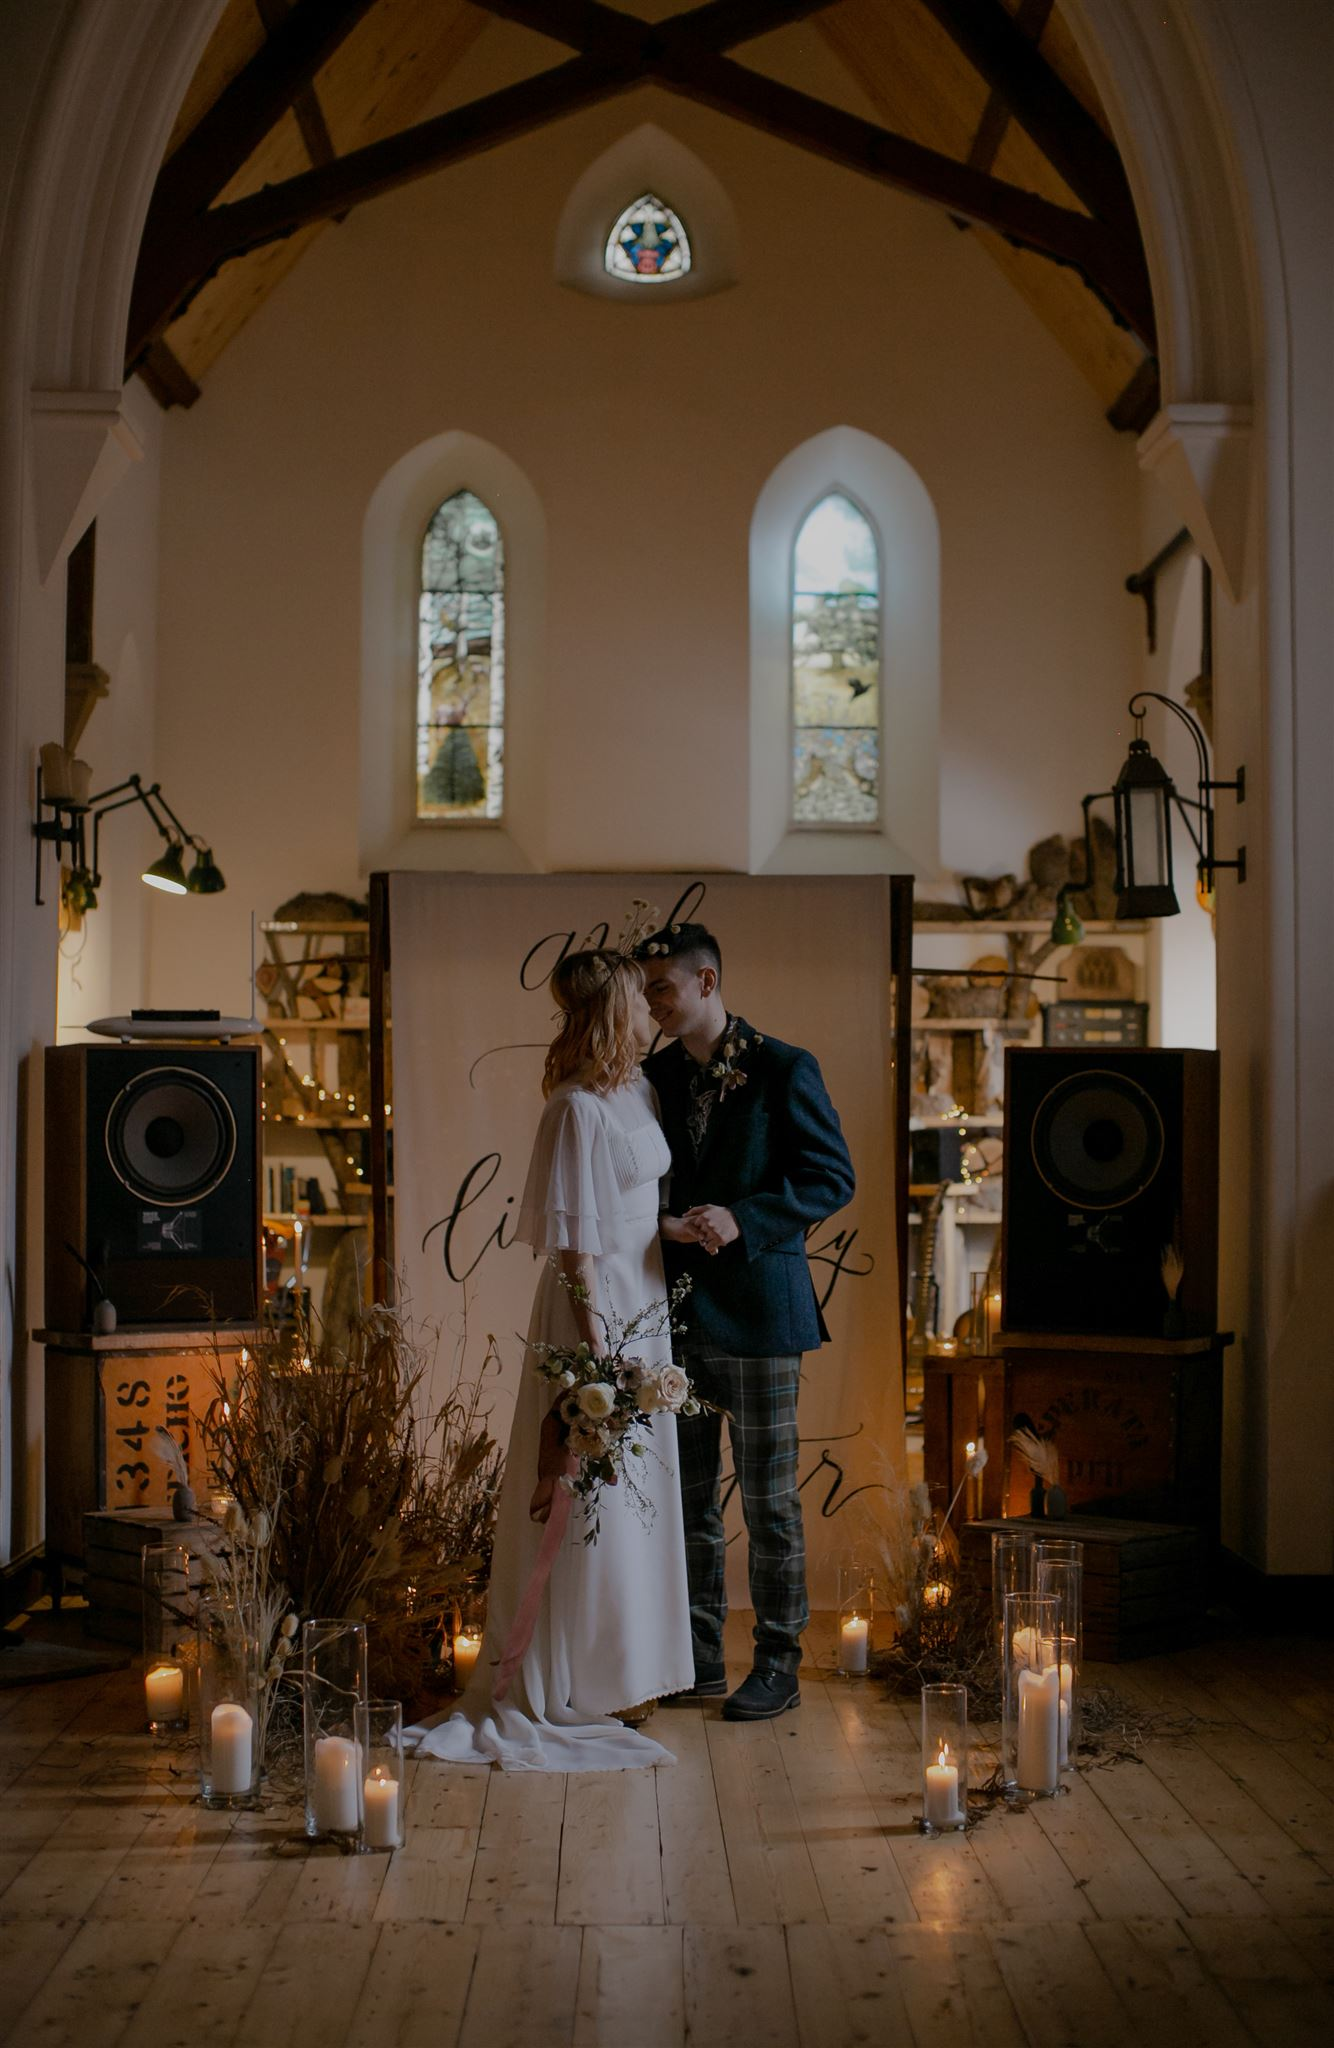 St Mary's Wedding Space